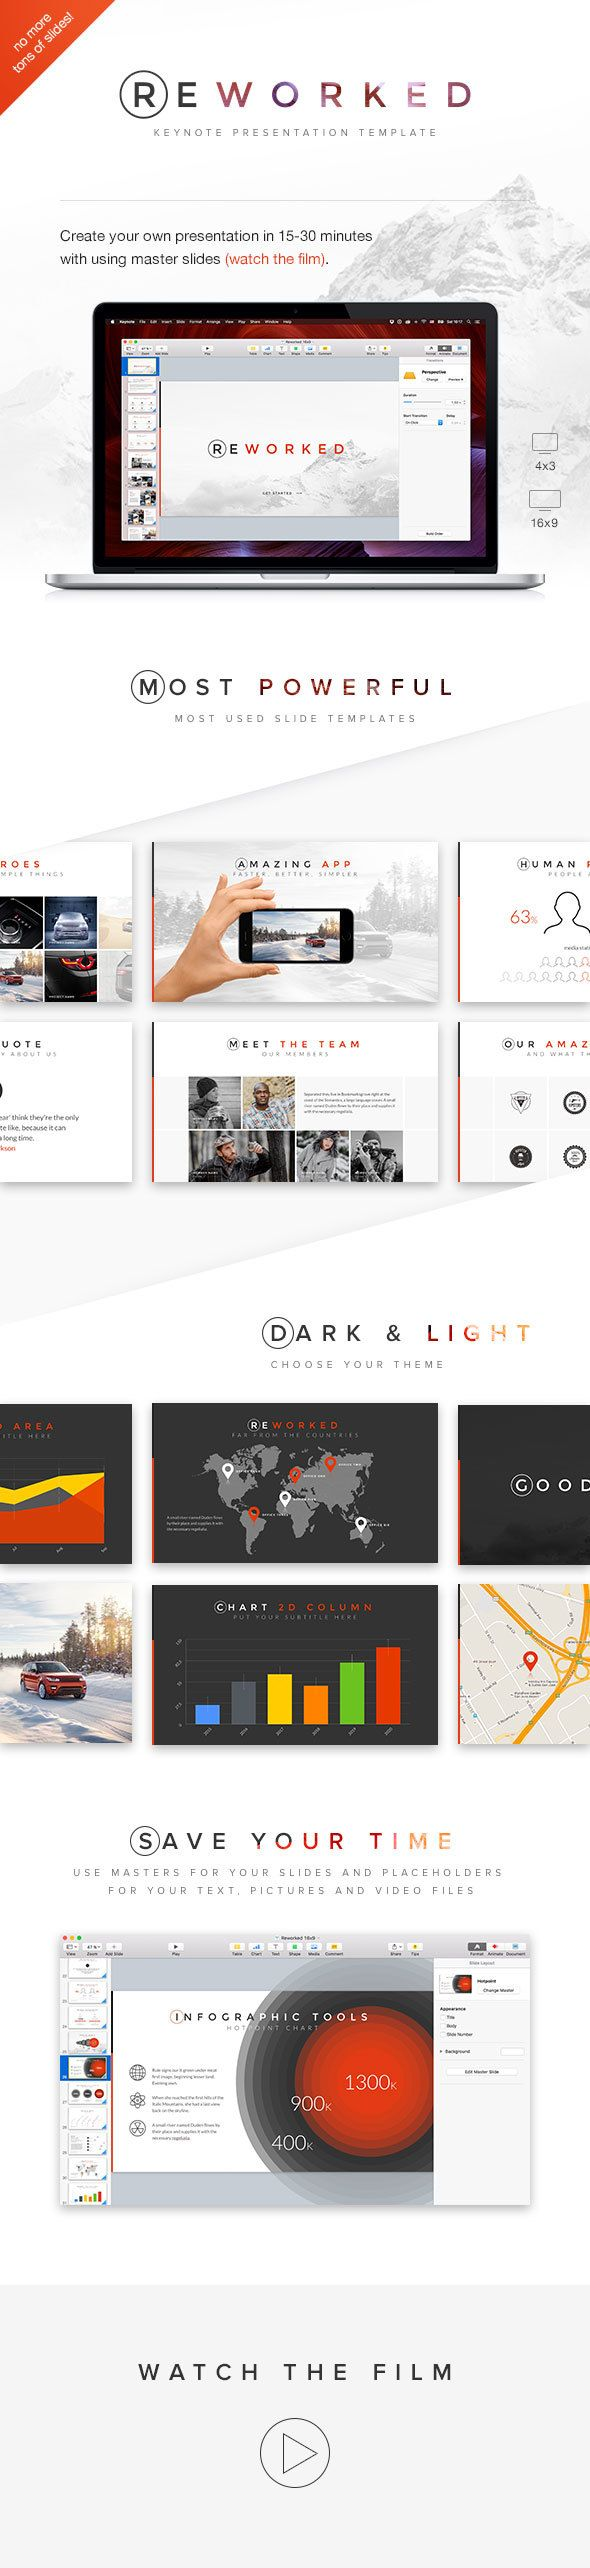 Reworked Keynote Presentation Template #design #slides Download: http://graphicriver.net/item/reworked-keynote-presentation-template/13430635?ref=ksioks